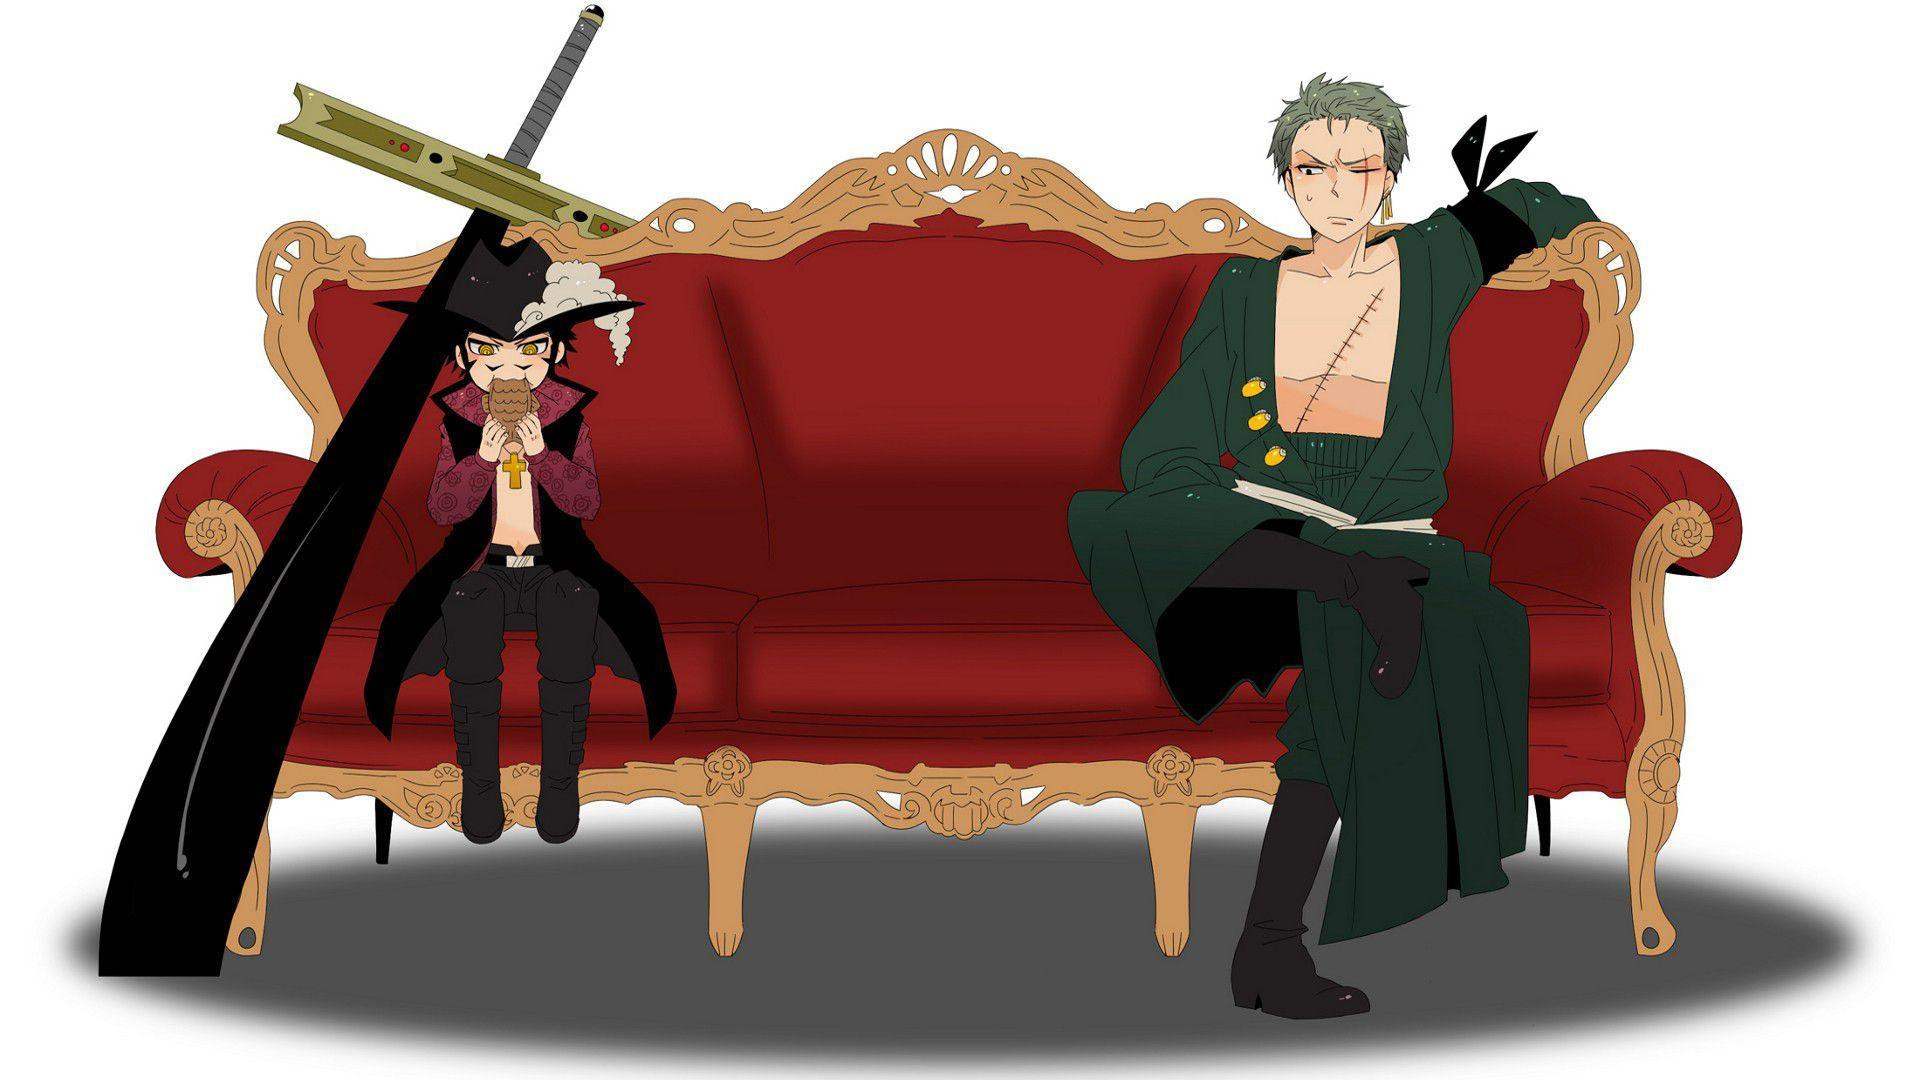 Anime One Piece Zoro Roronoa Dracule Mihawk Wallpapers